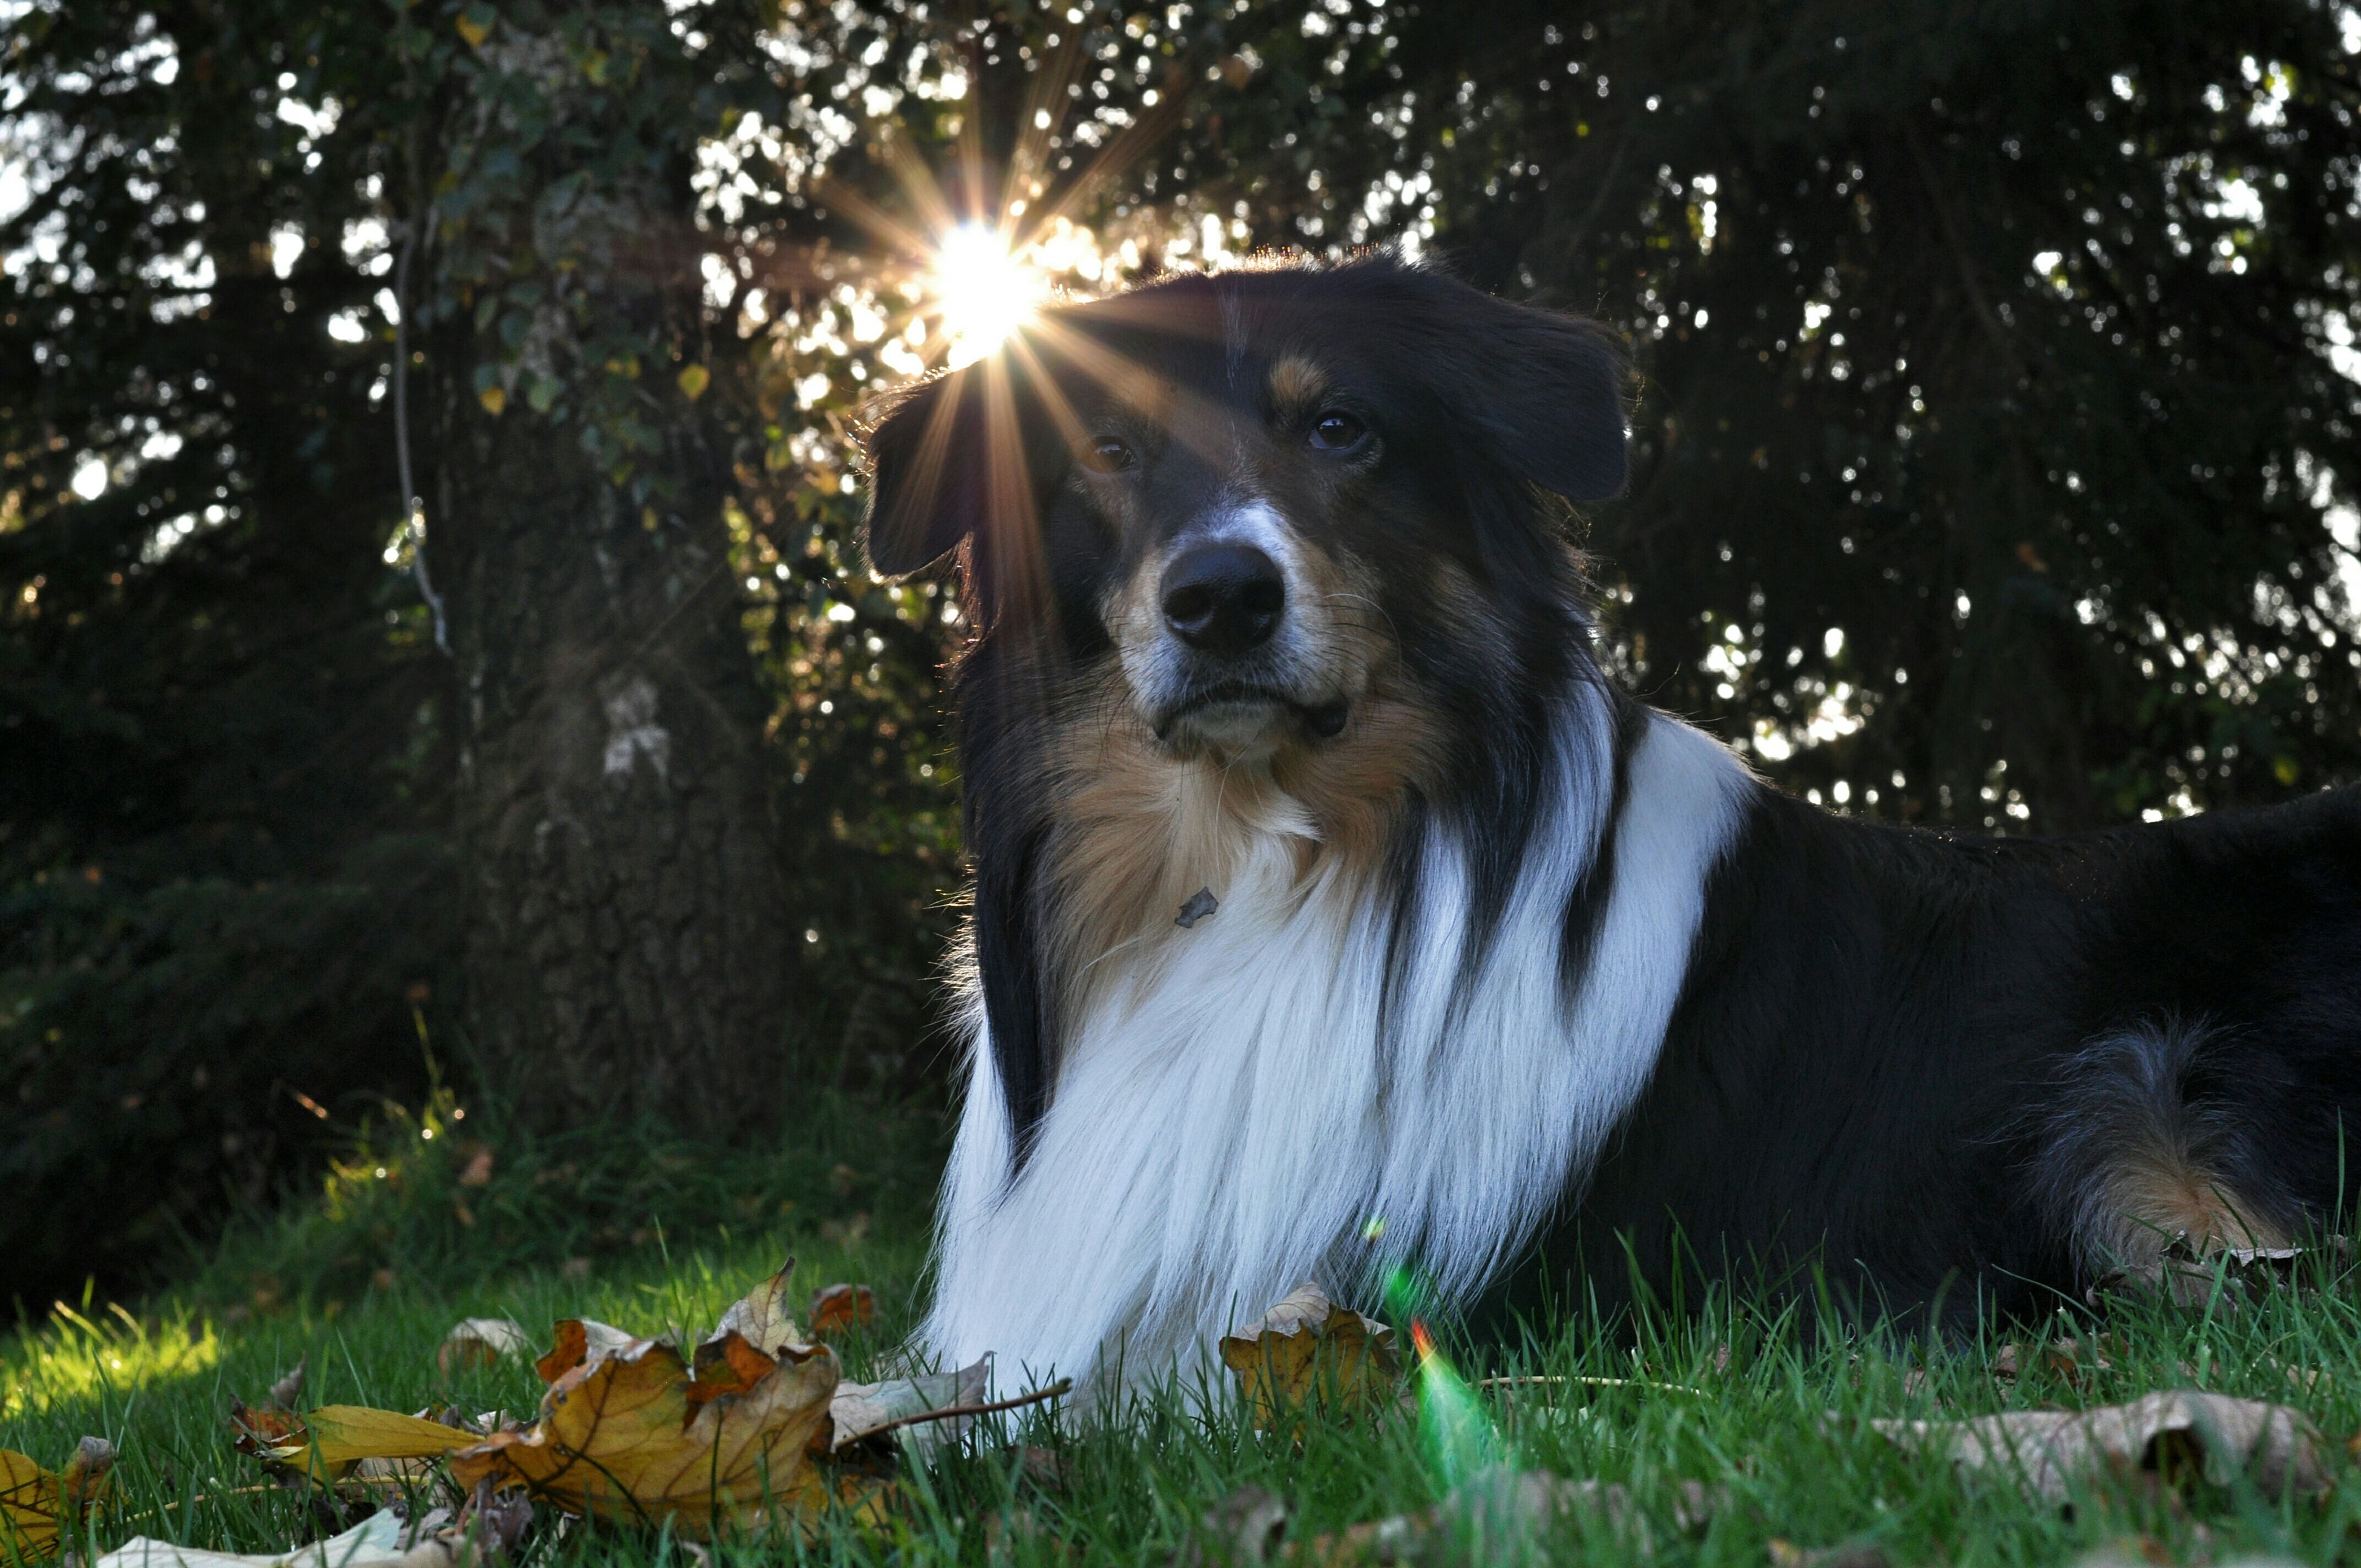 mammal, domestic animals, animal themes, one animal, dog, pets, tree, sunlight, grass, field, nature, no people, outdoors, lens flare, sunbeam, animal head, forest, day, sitting, close-up